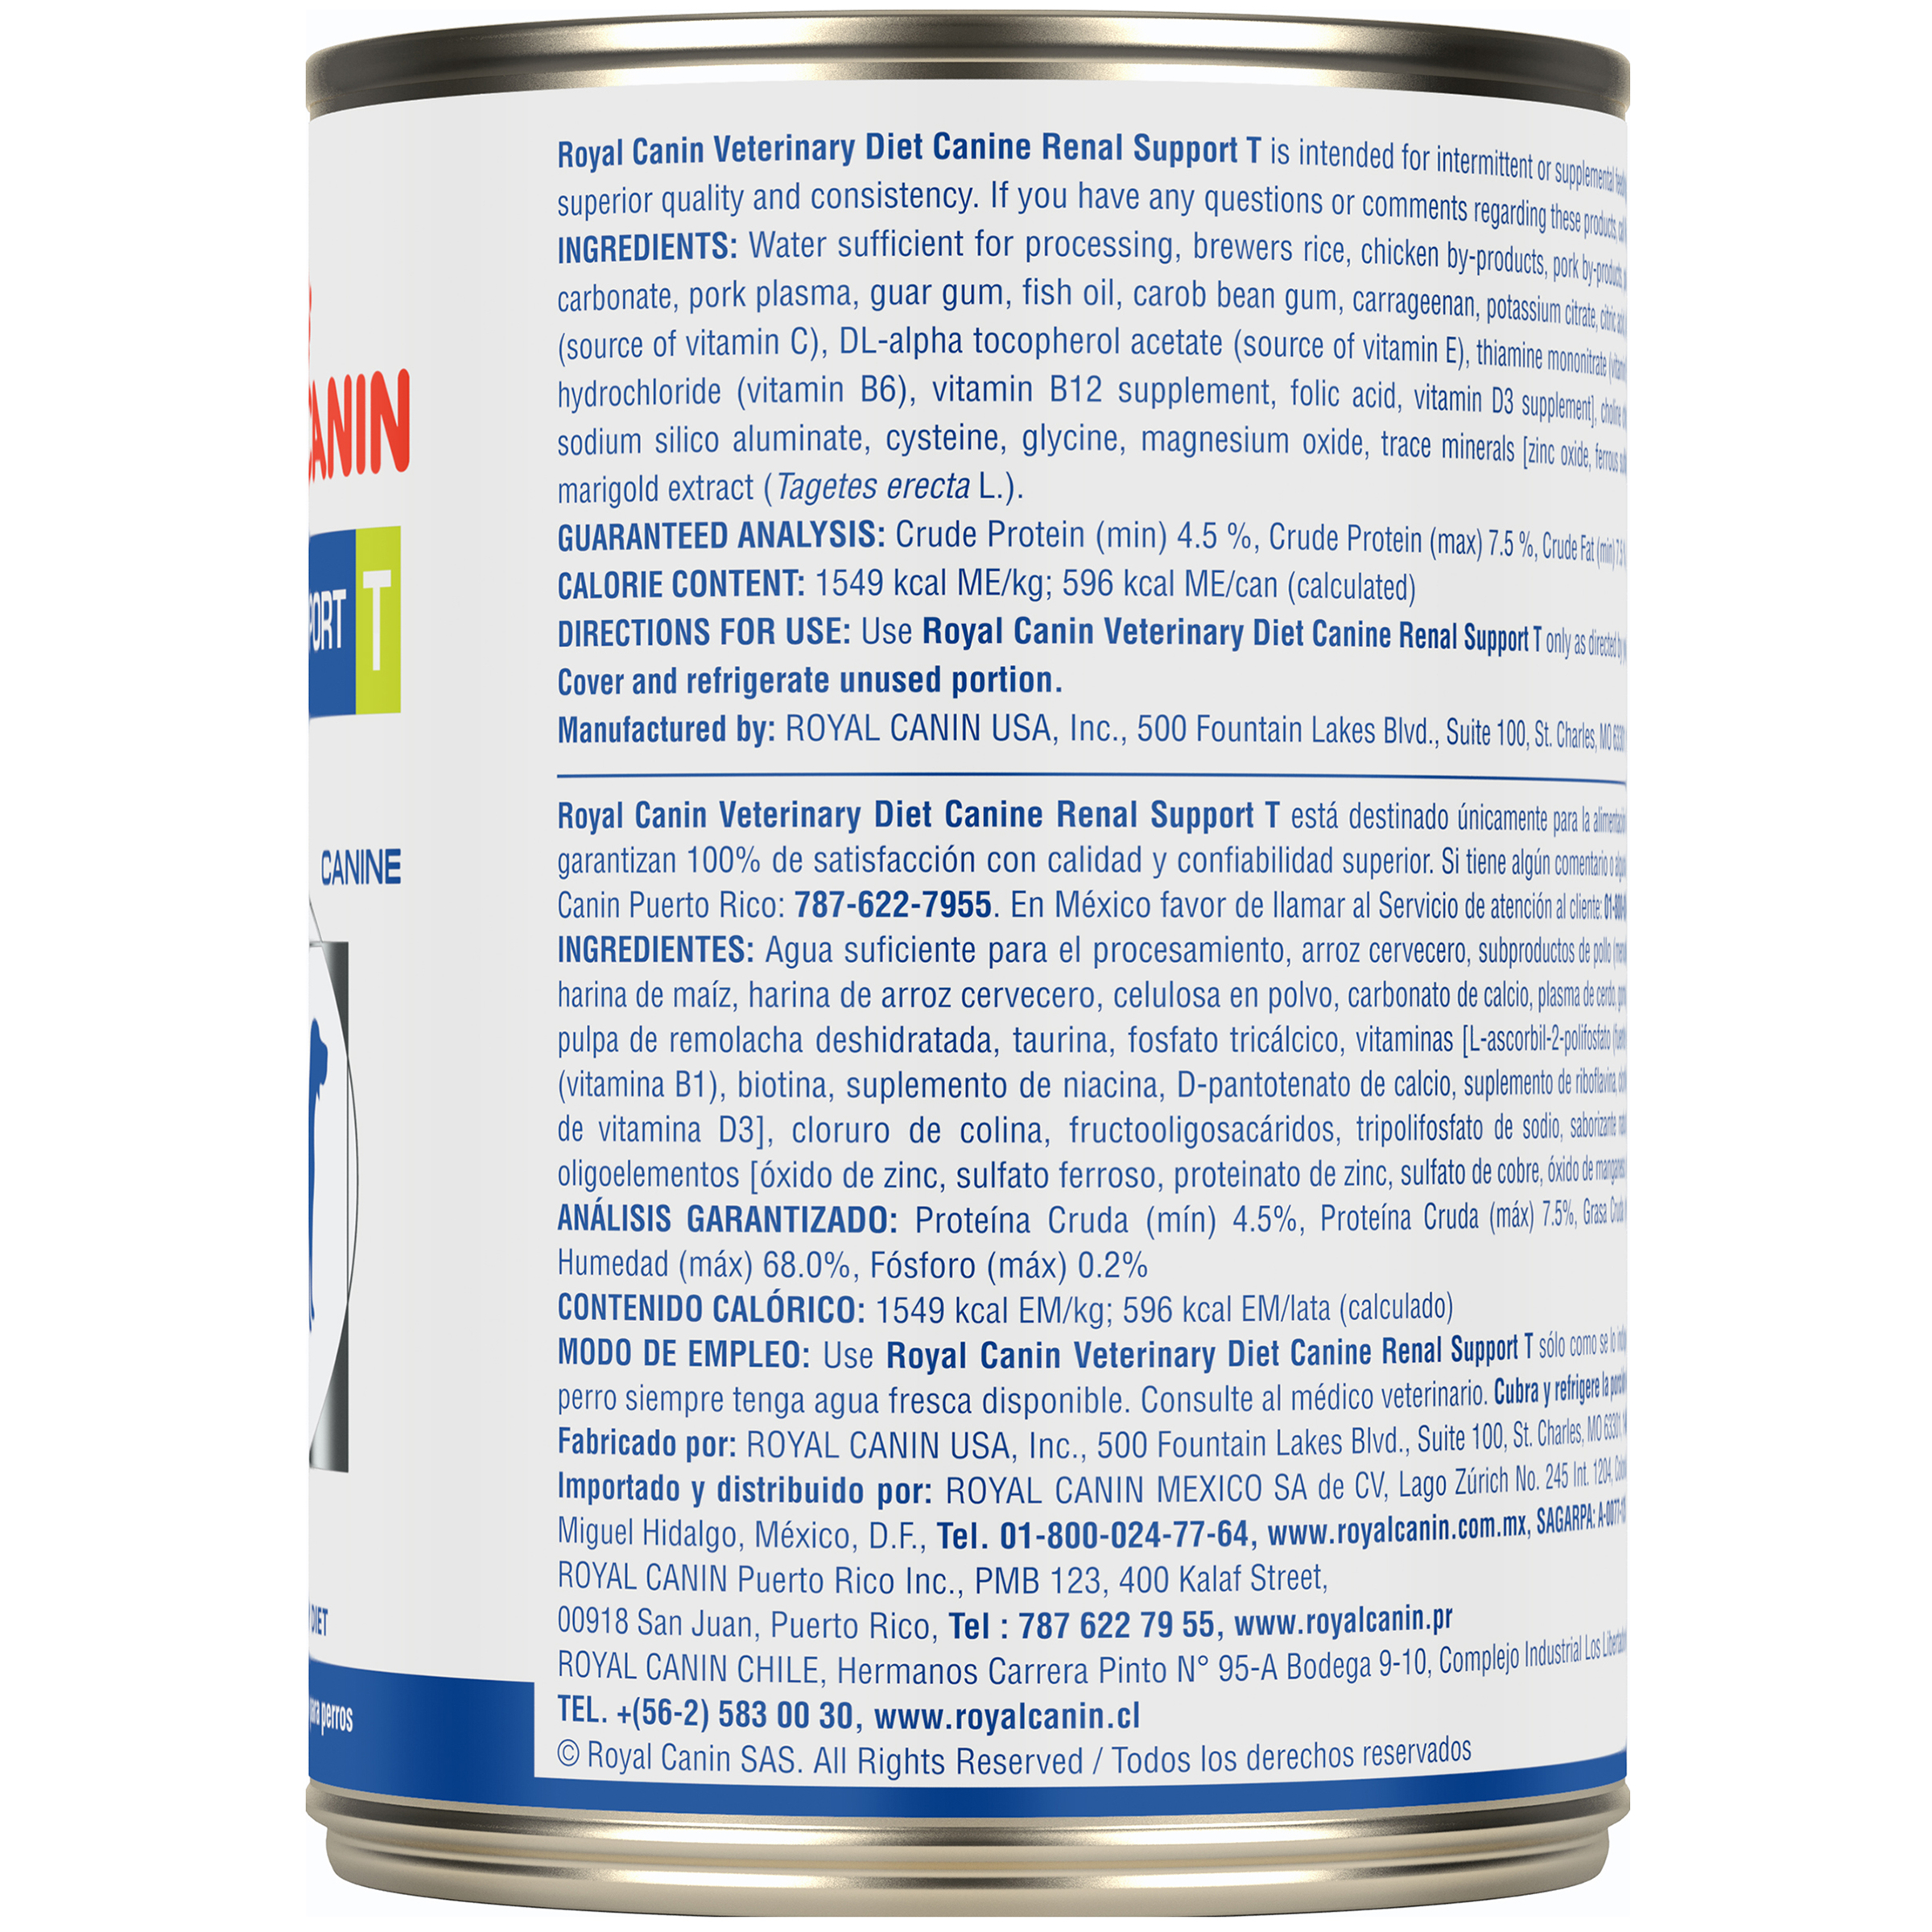 Royal Canin Veterinary Diet Canine Renal Support T Canned Dog Food